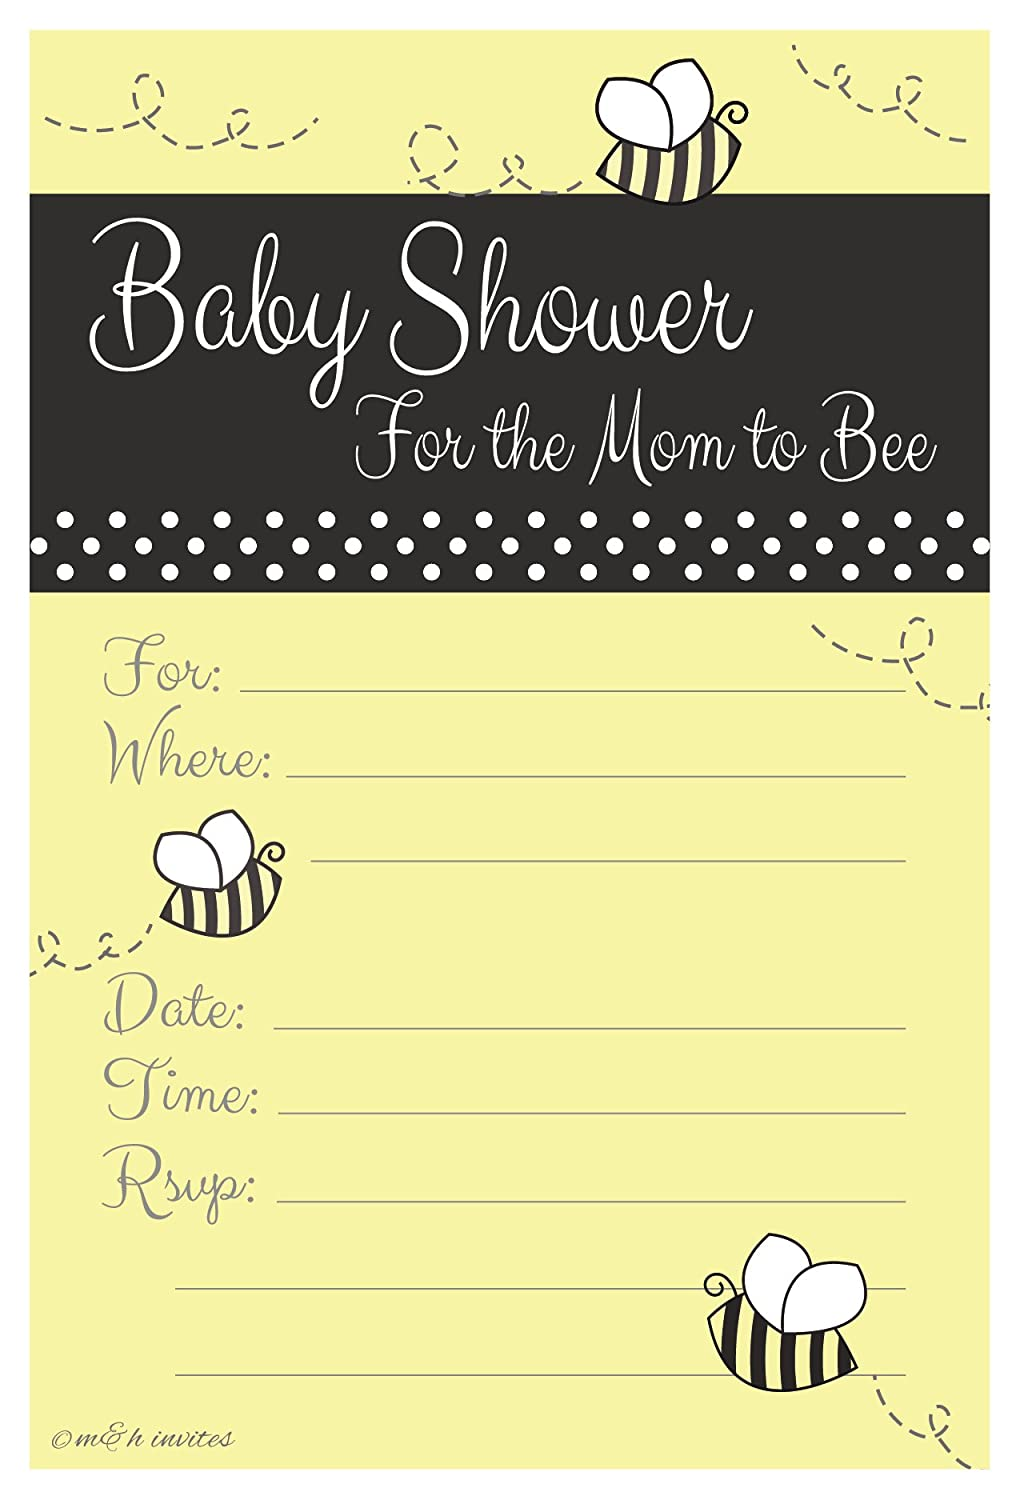 Amazon.com: Bumble Bee Baby Shower Invitations - Fill In Style (20 ...